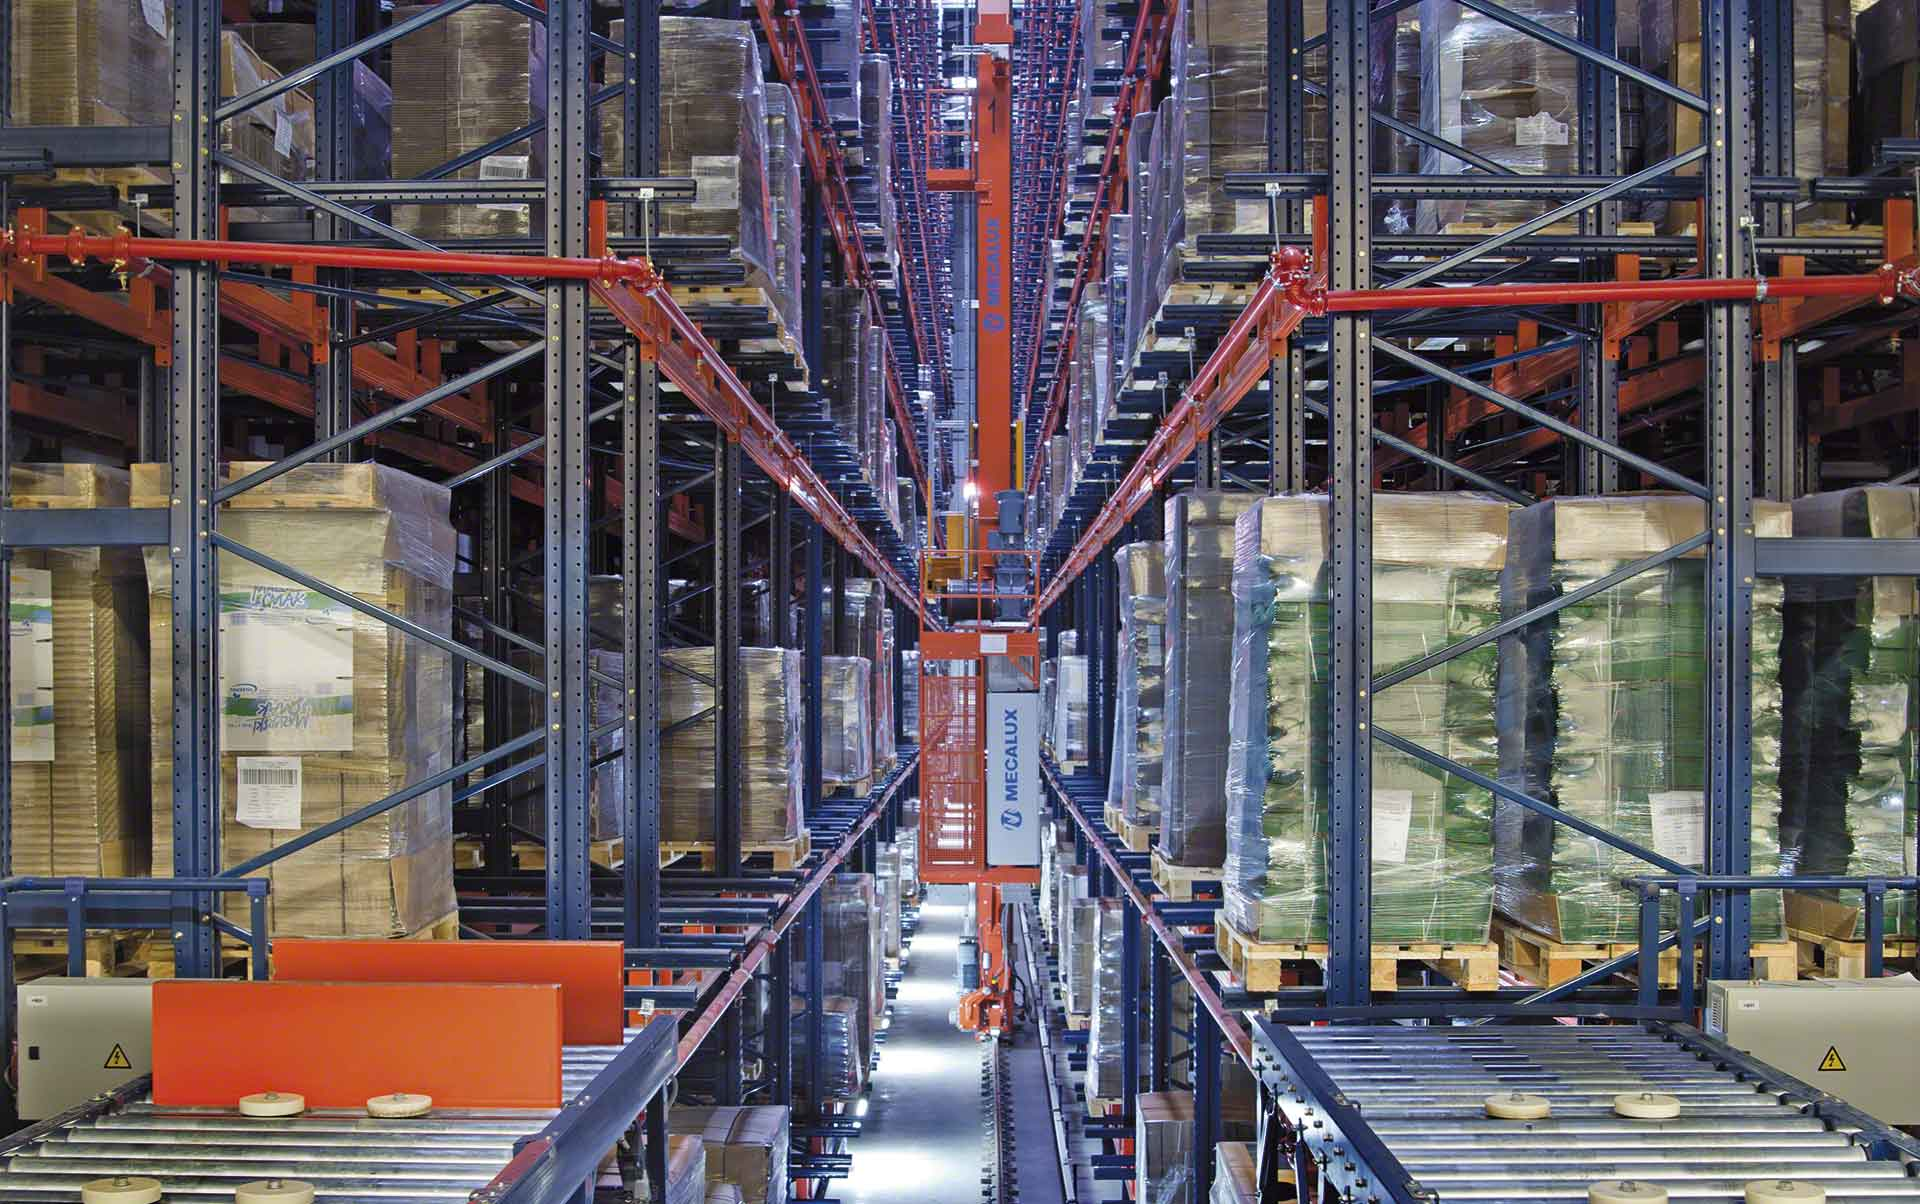 Easy WMS, the warehouse management system by Interlake Mecalux, runs WOK's installation